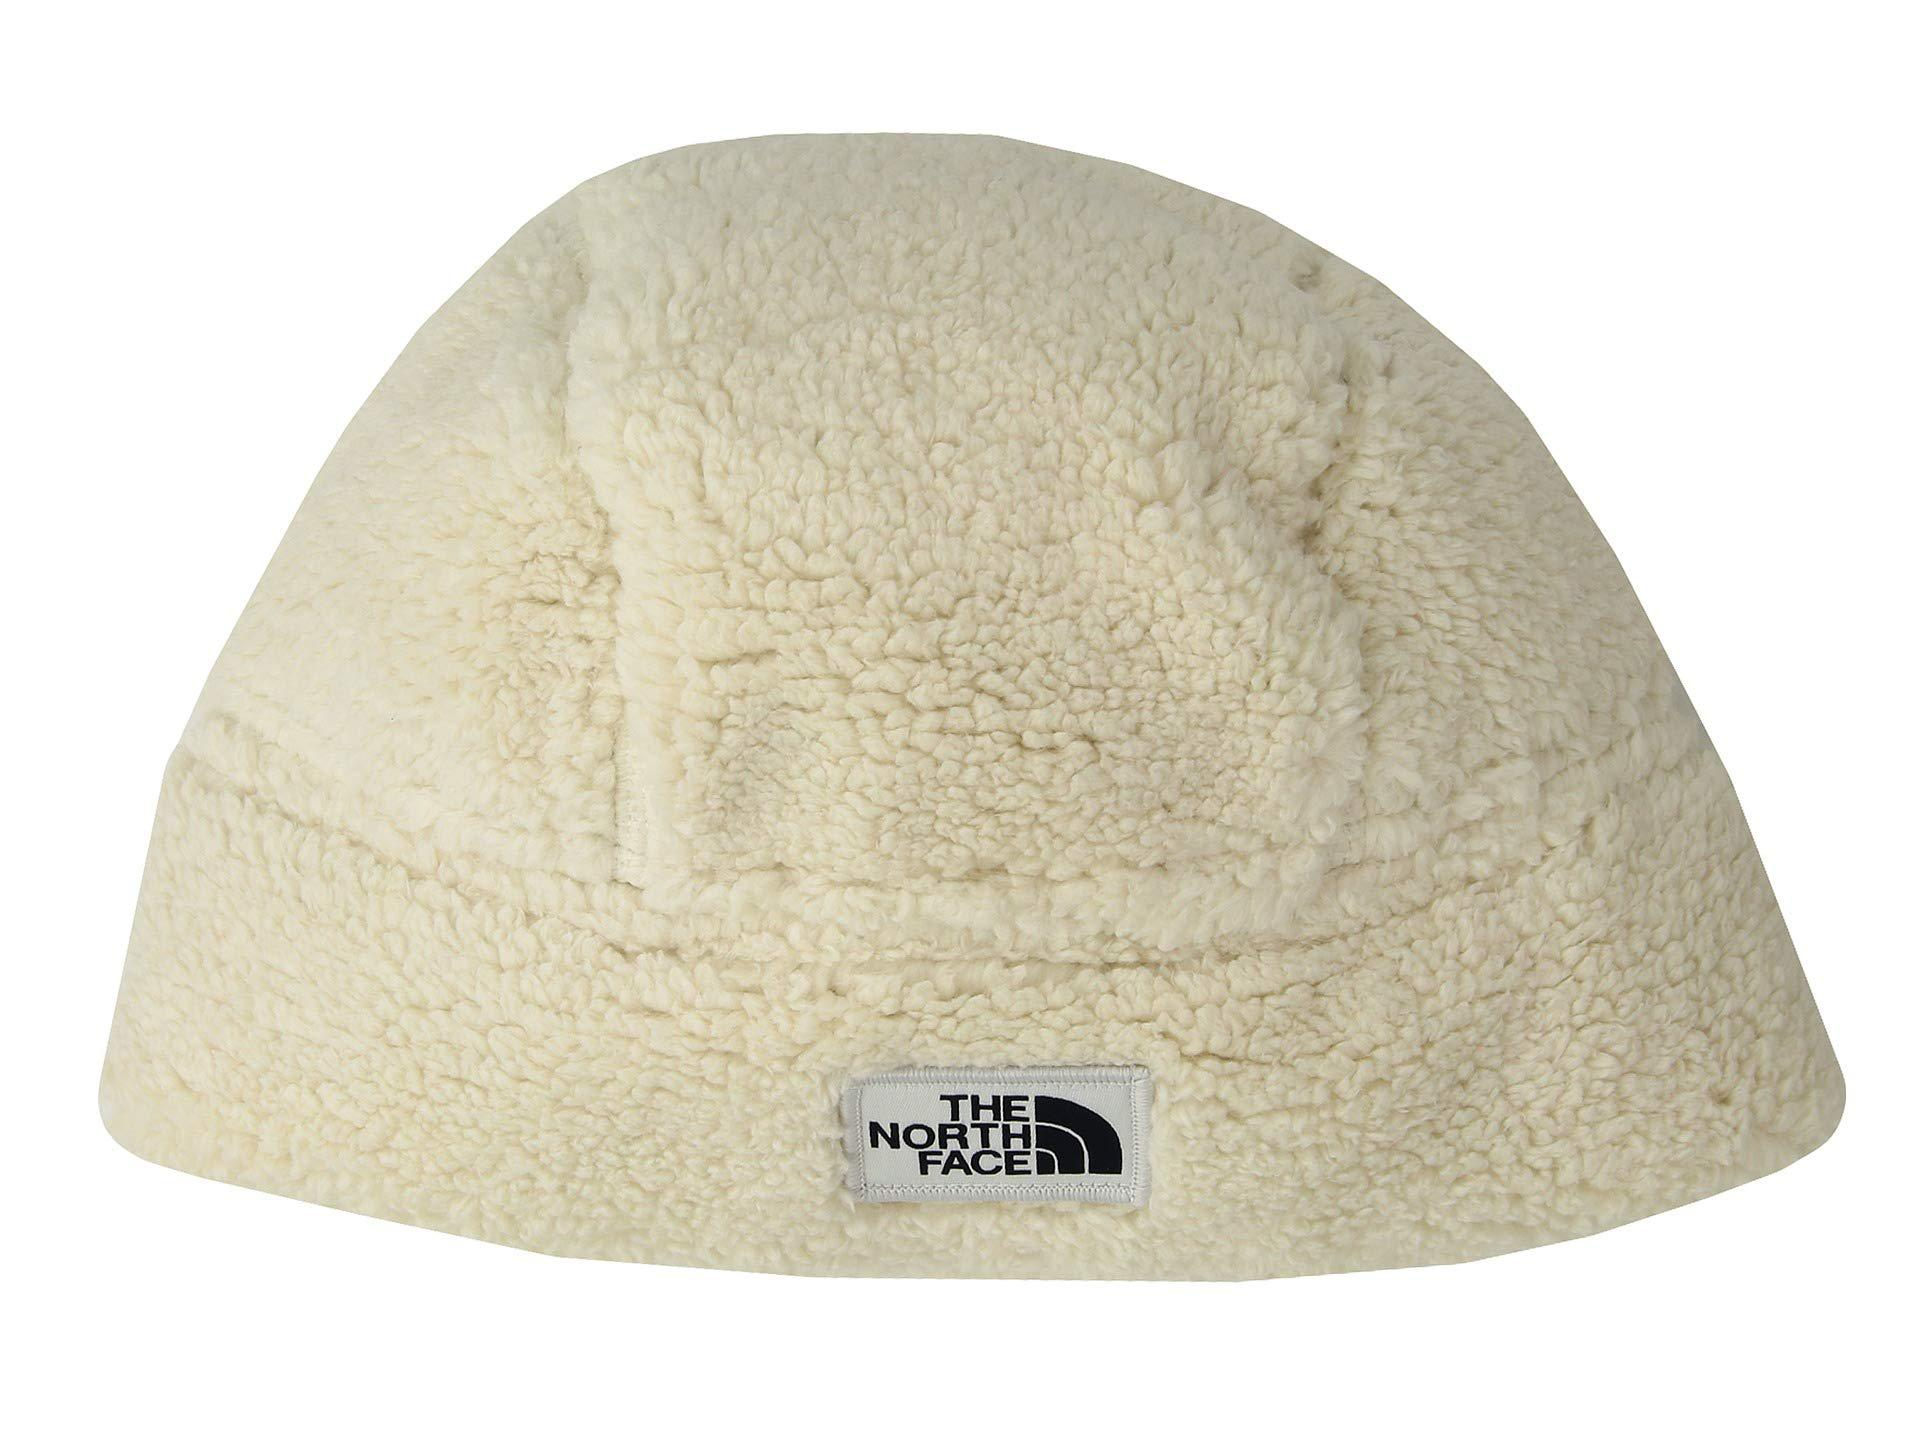 Lyst - The North Face Campshire Beanie (four Leaf Clover) Beanies in ... 01891d42defa